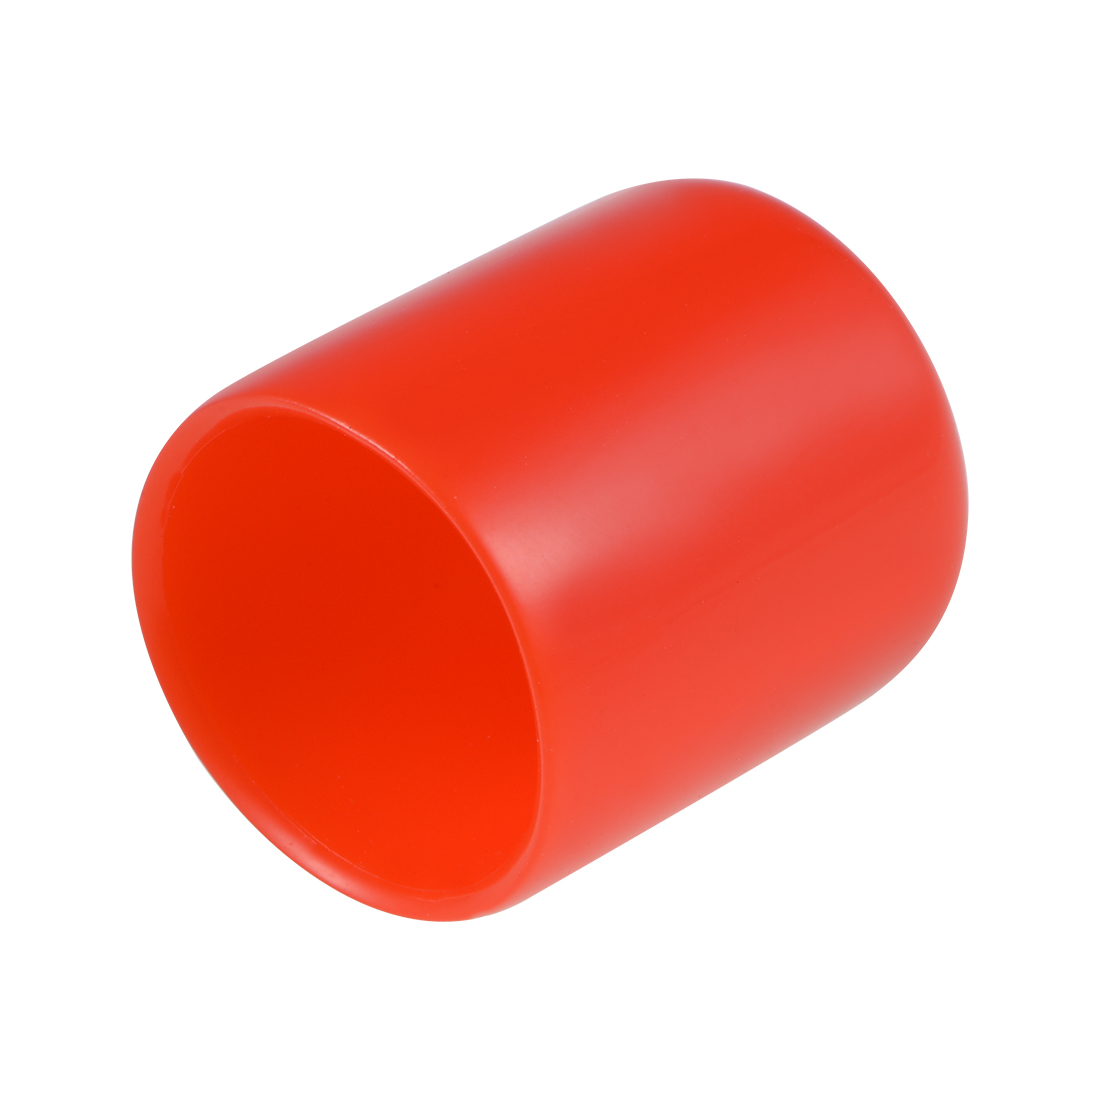 Screw Thread Protectors, 20mm ID 28mm Length Round End Cap Cover Red 10pcs